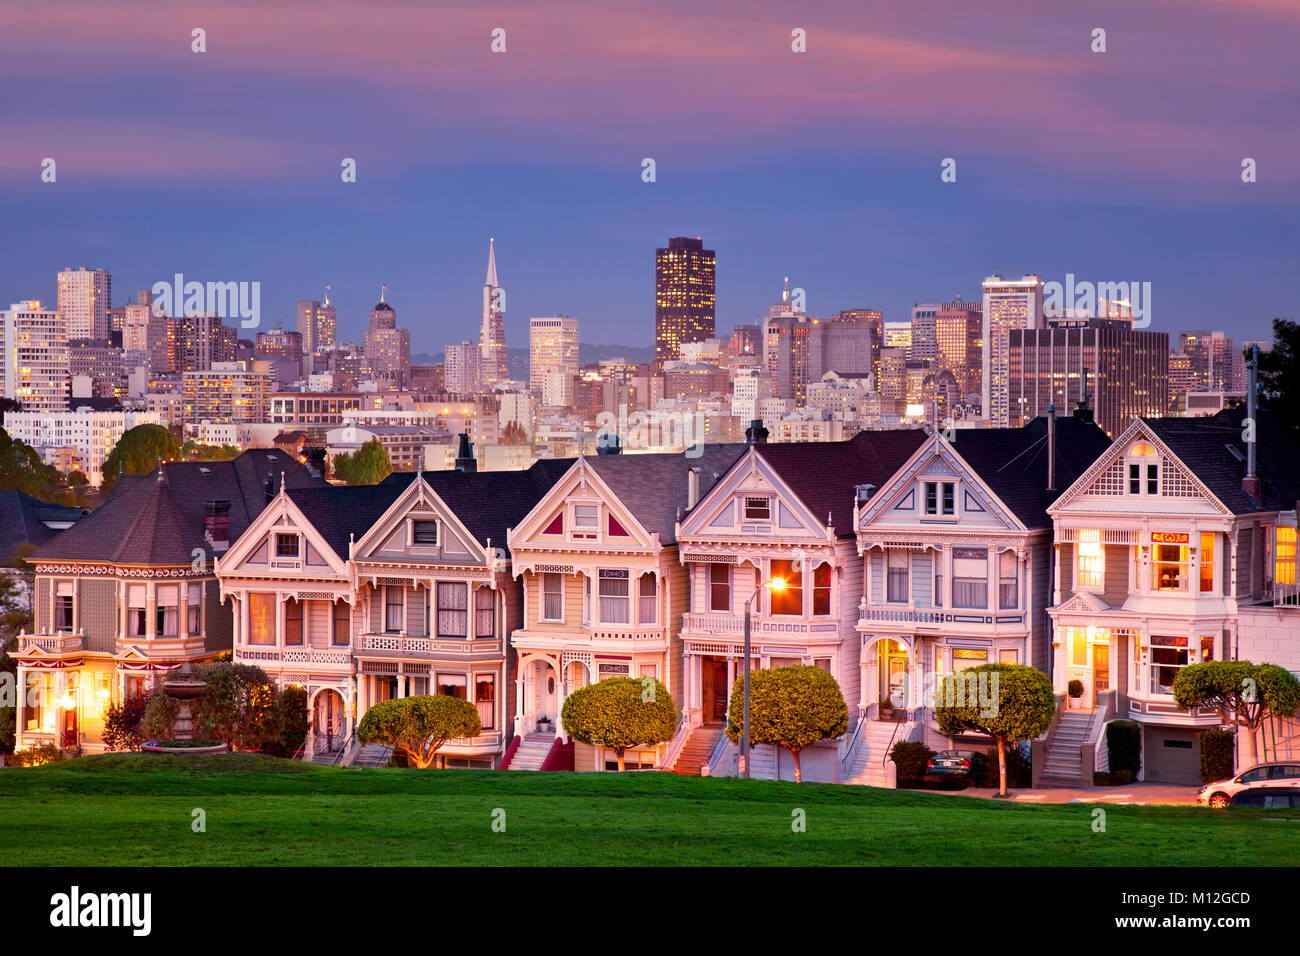 Victorian Homes Stock Photos & Victorian Homes Stock Images - Alamy